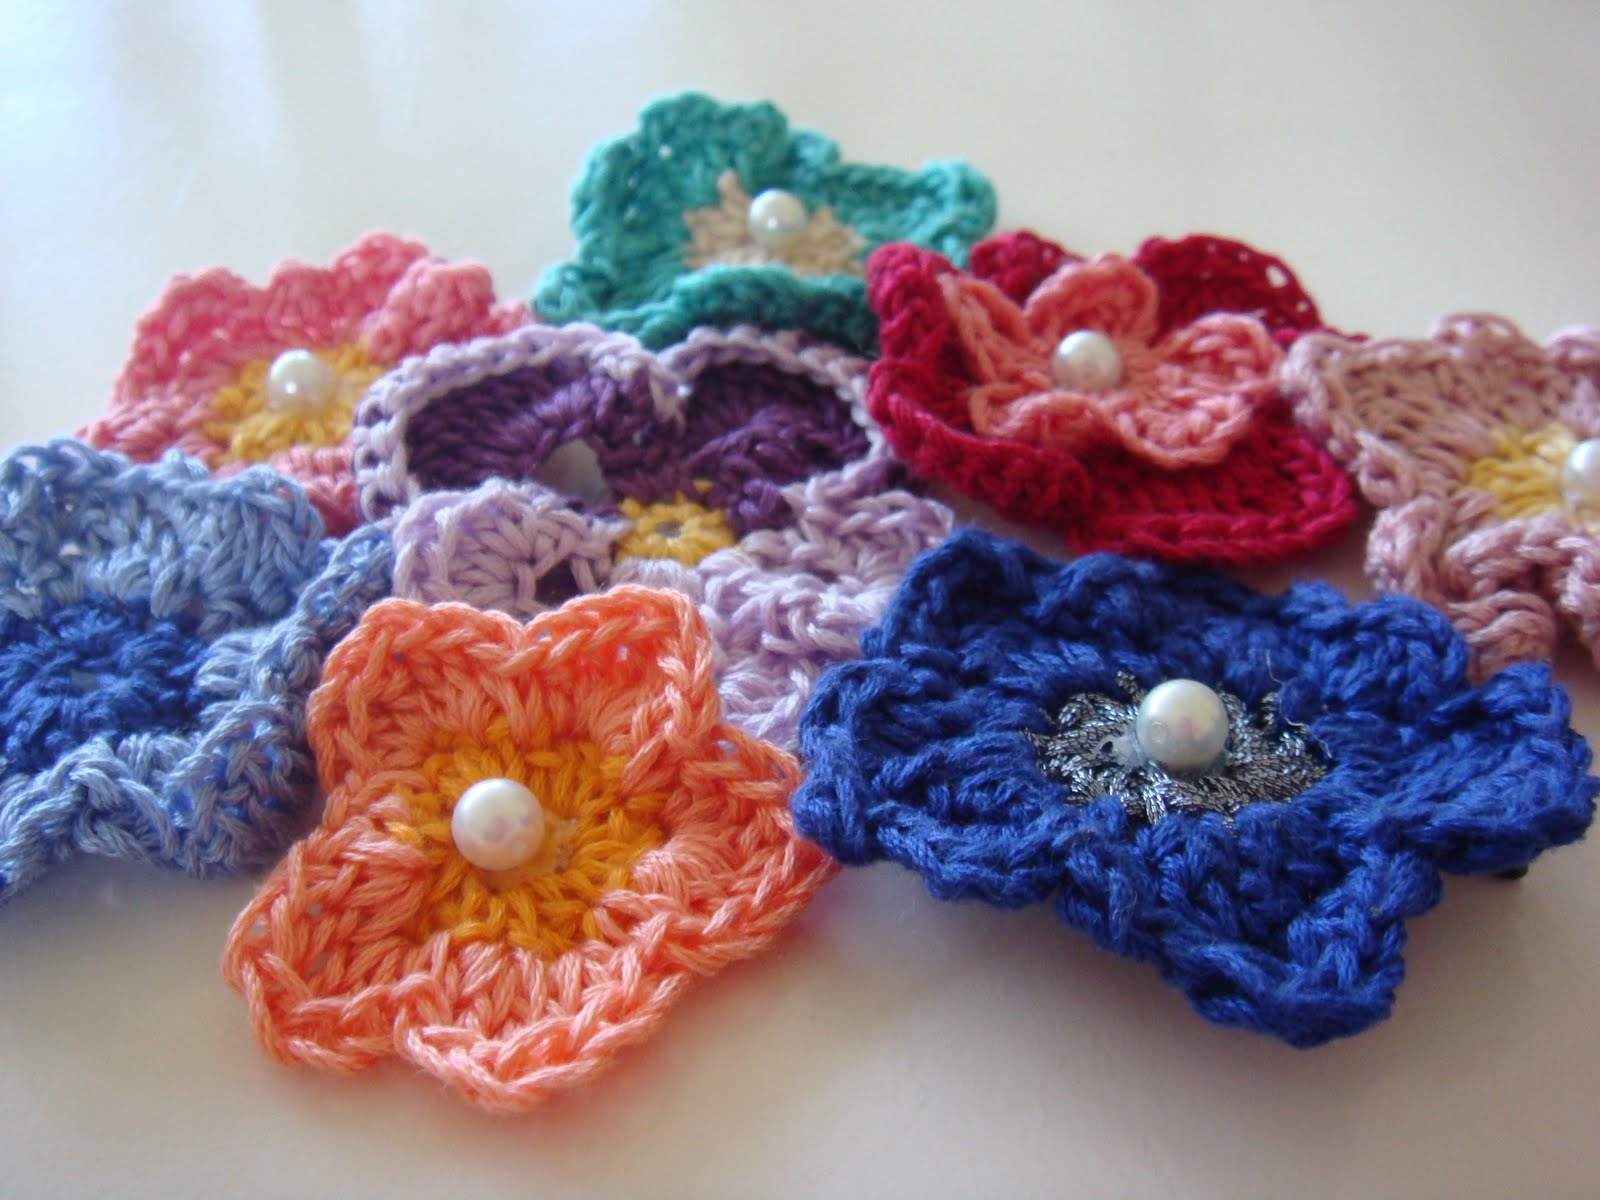 Crochet Hair Accessories Video : Recycled DIY: crochet hair accessories